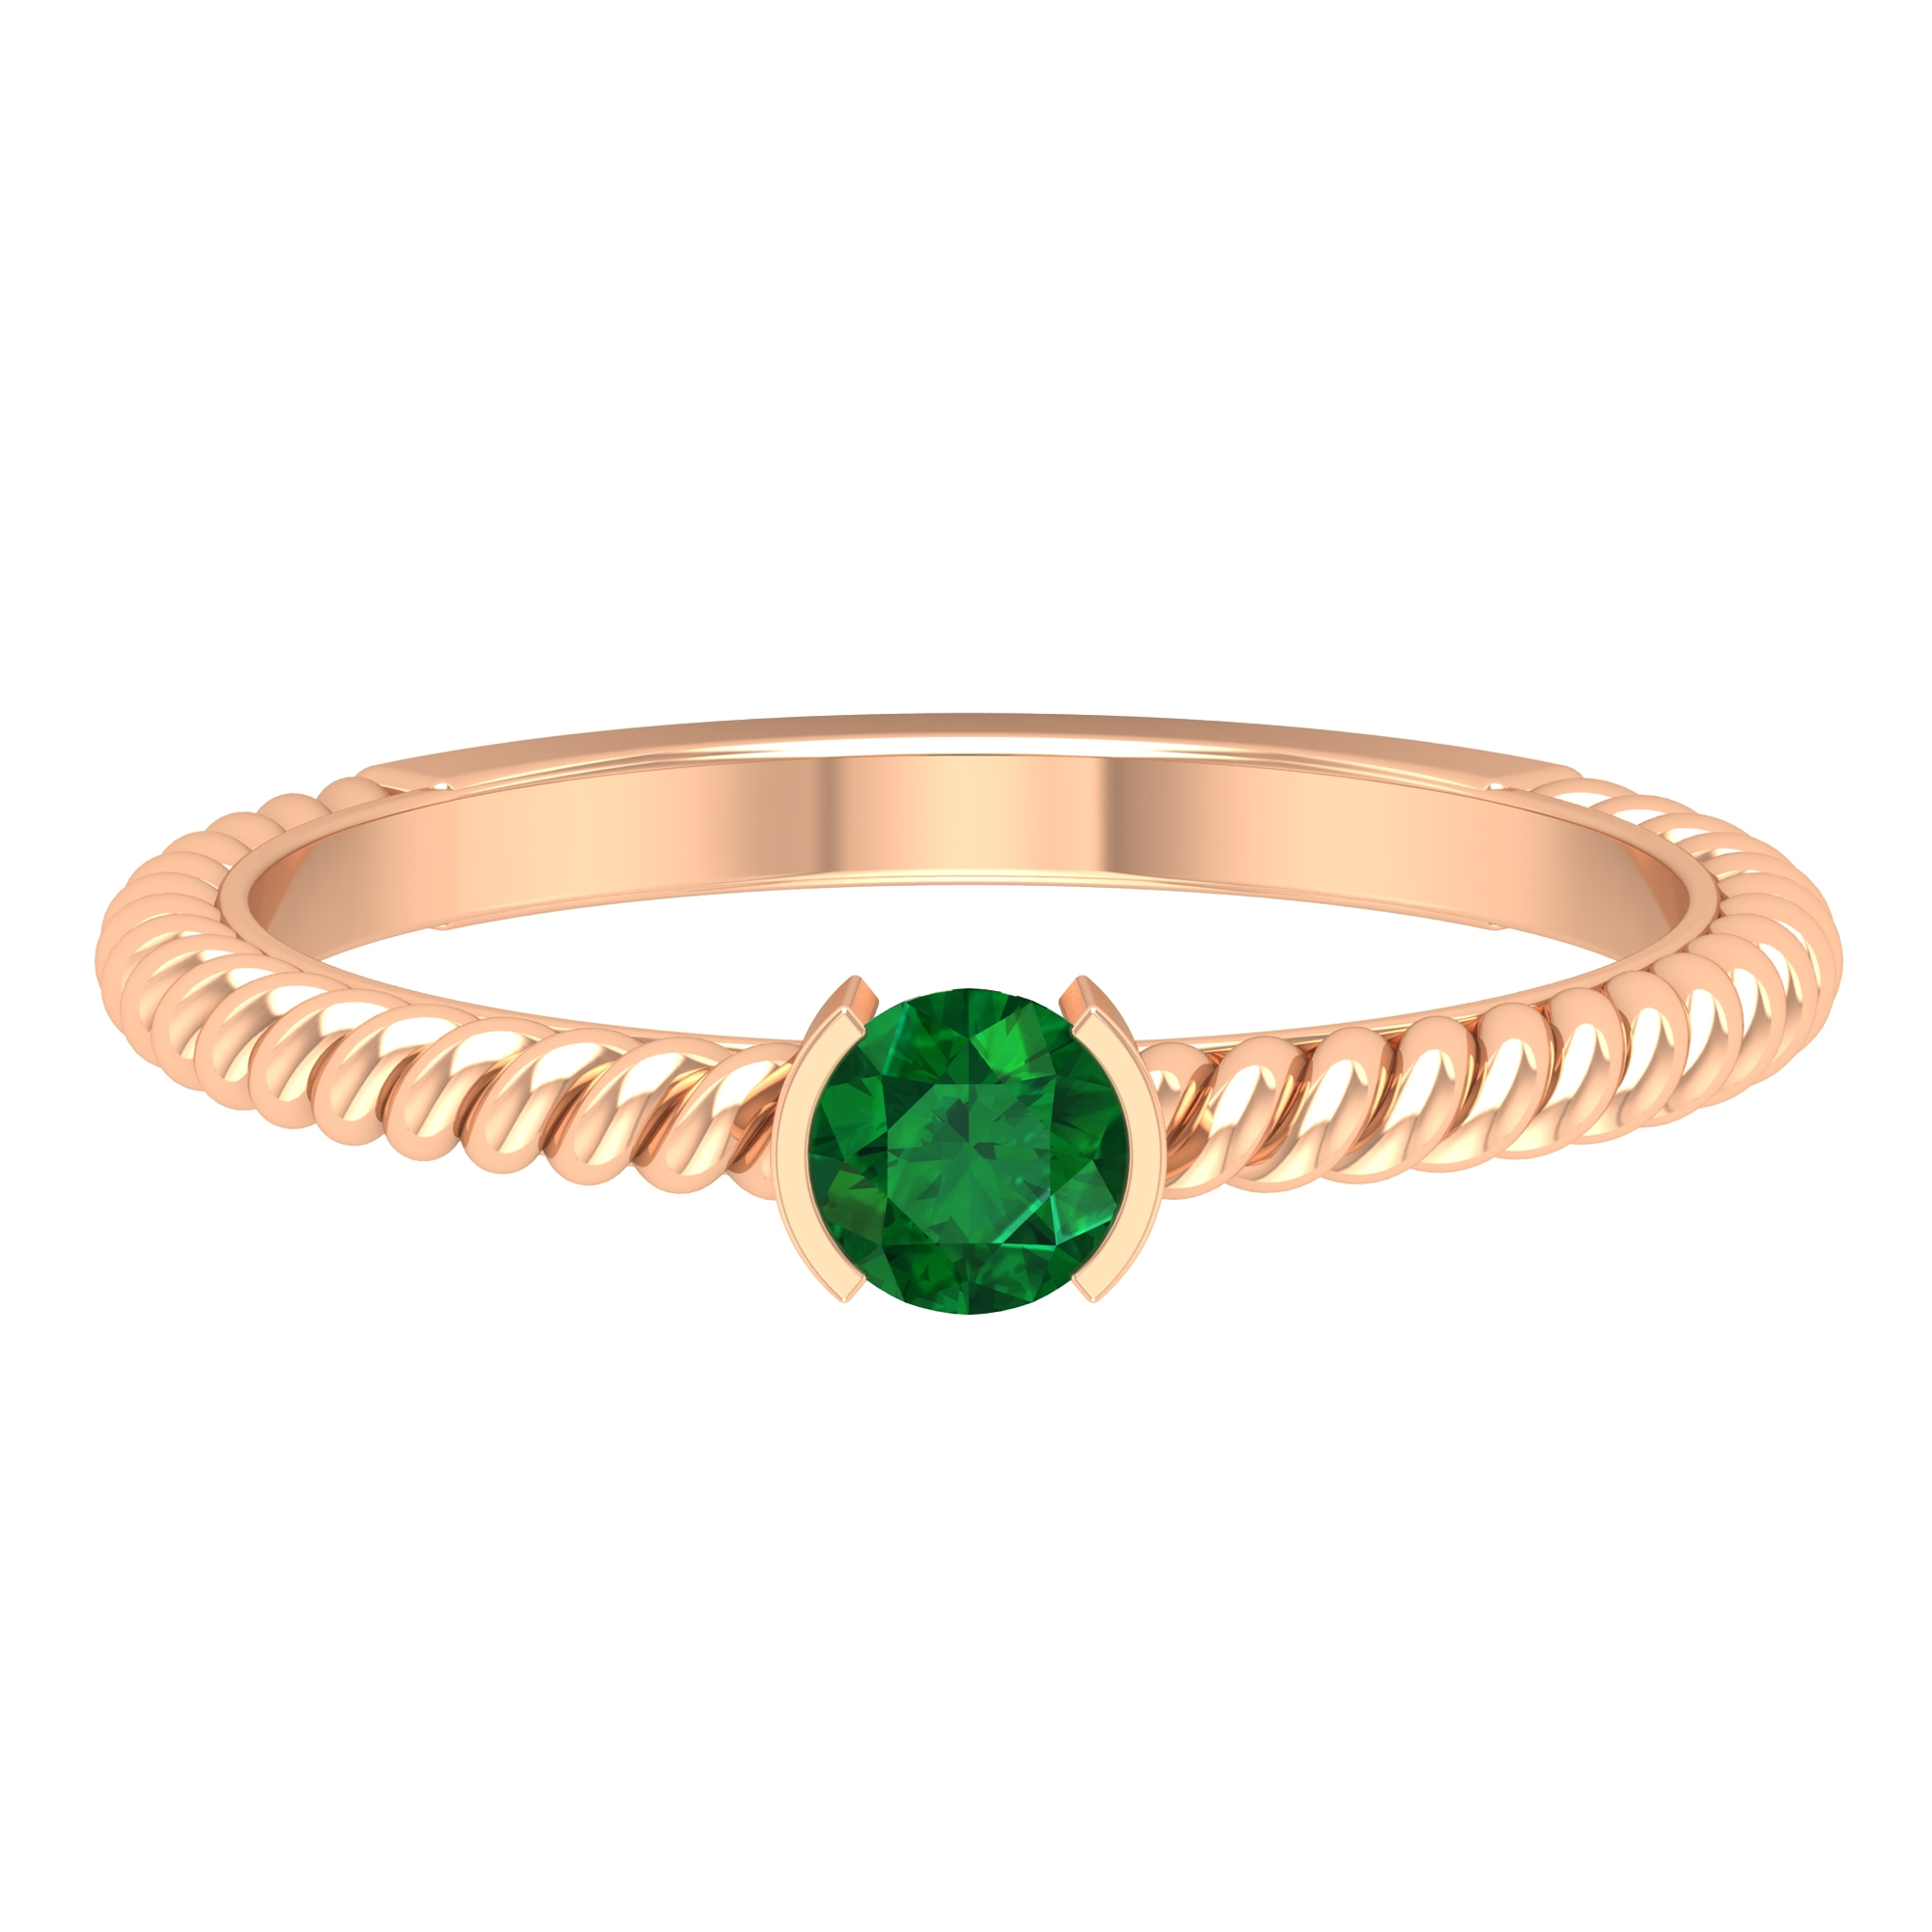 May Birthstone 4 MM Round Cut Emerald Solitaire Ring in Half Bezel Setting with Twisted Rope Frame